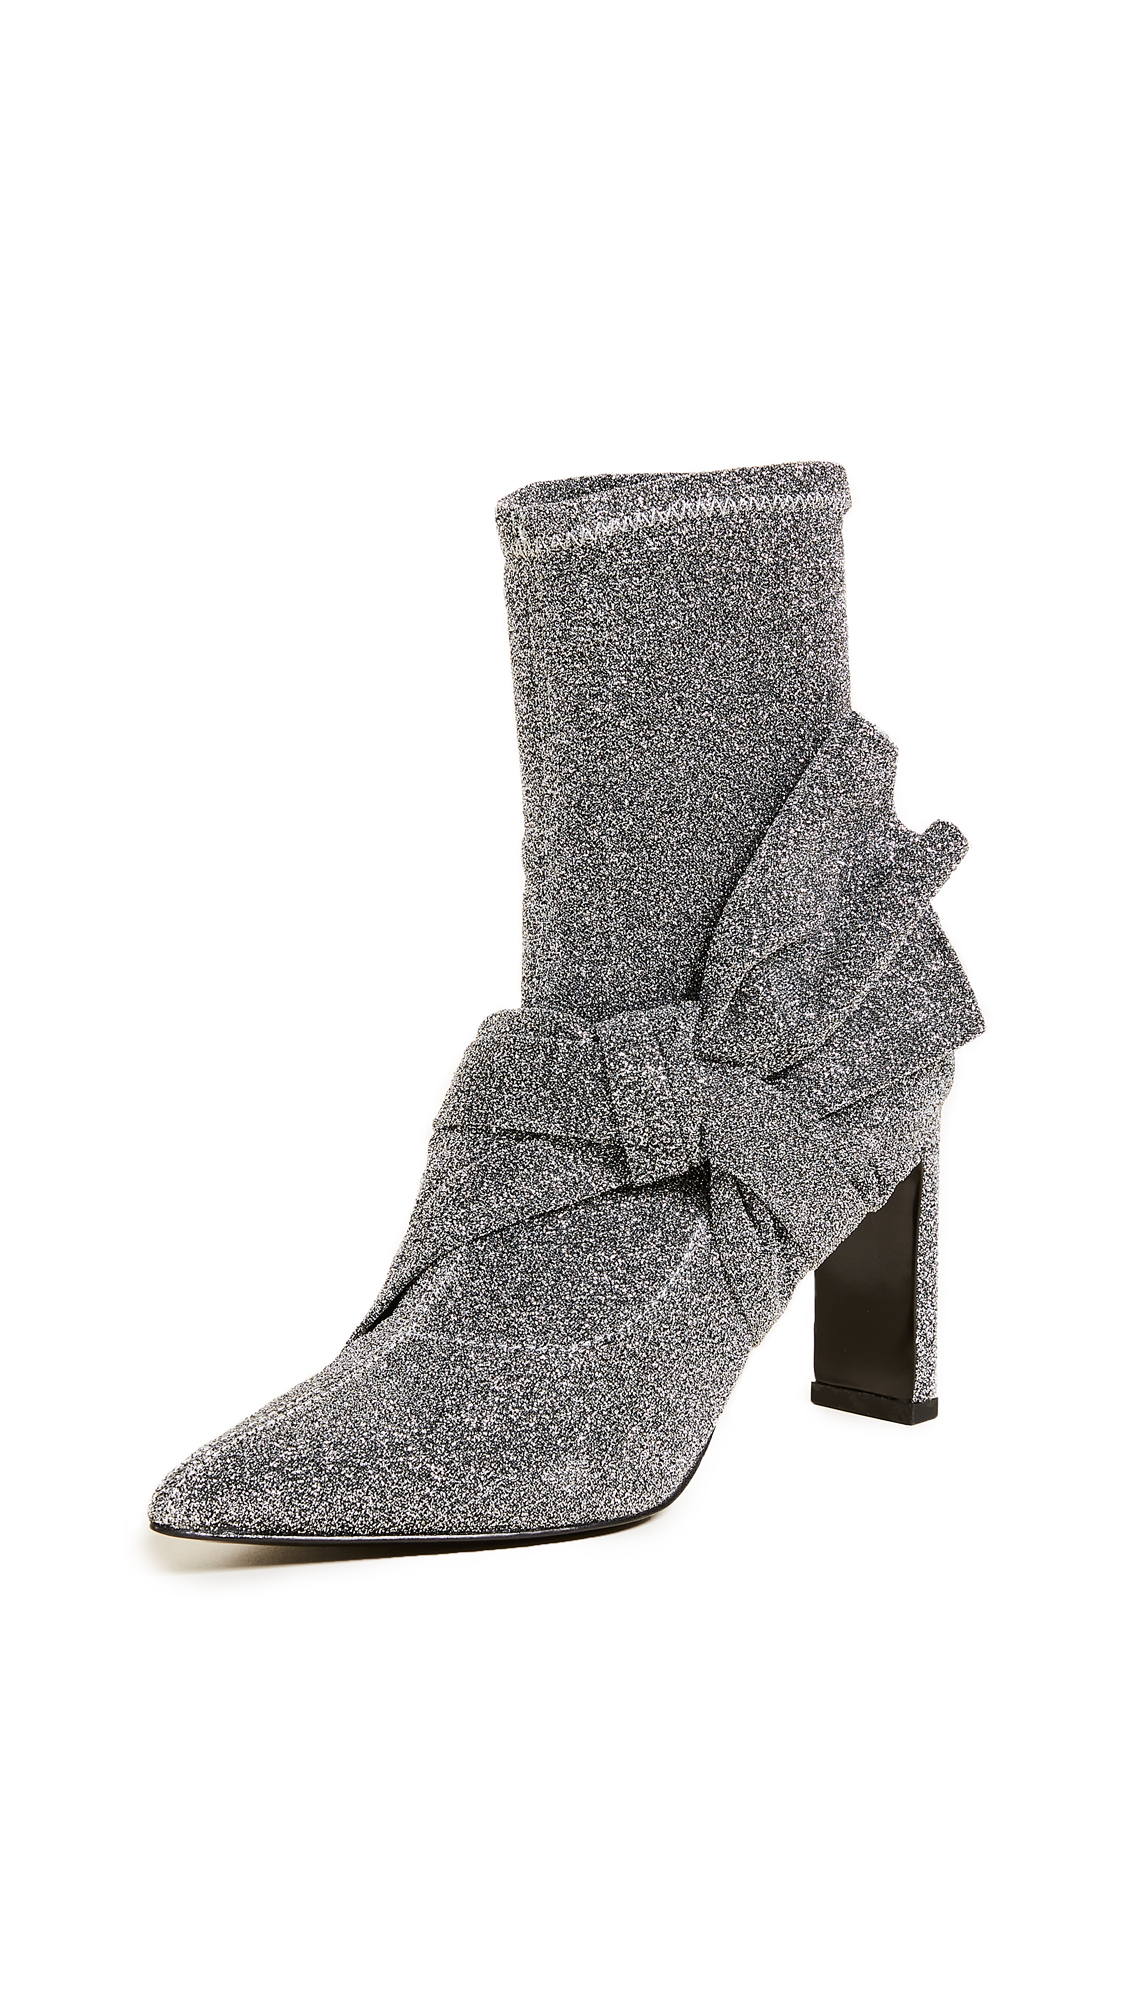 Sigerson Morrison Helin Bow Ankle Booties - Silver